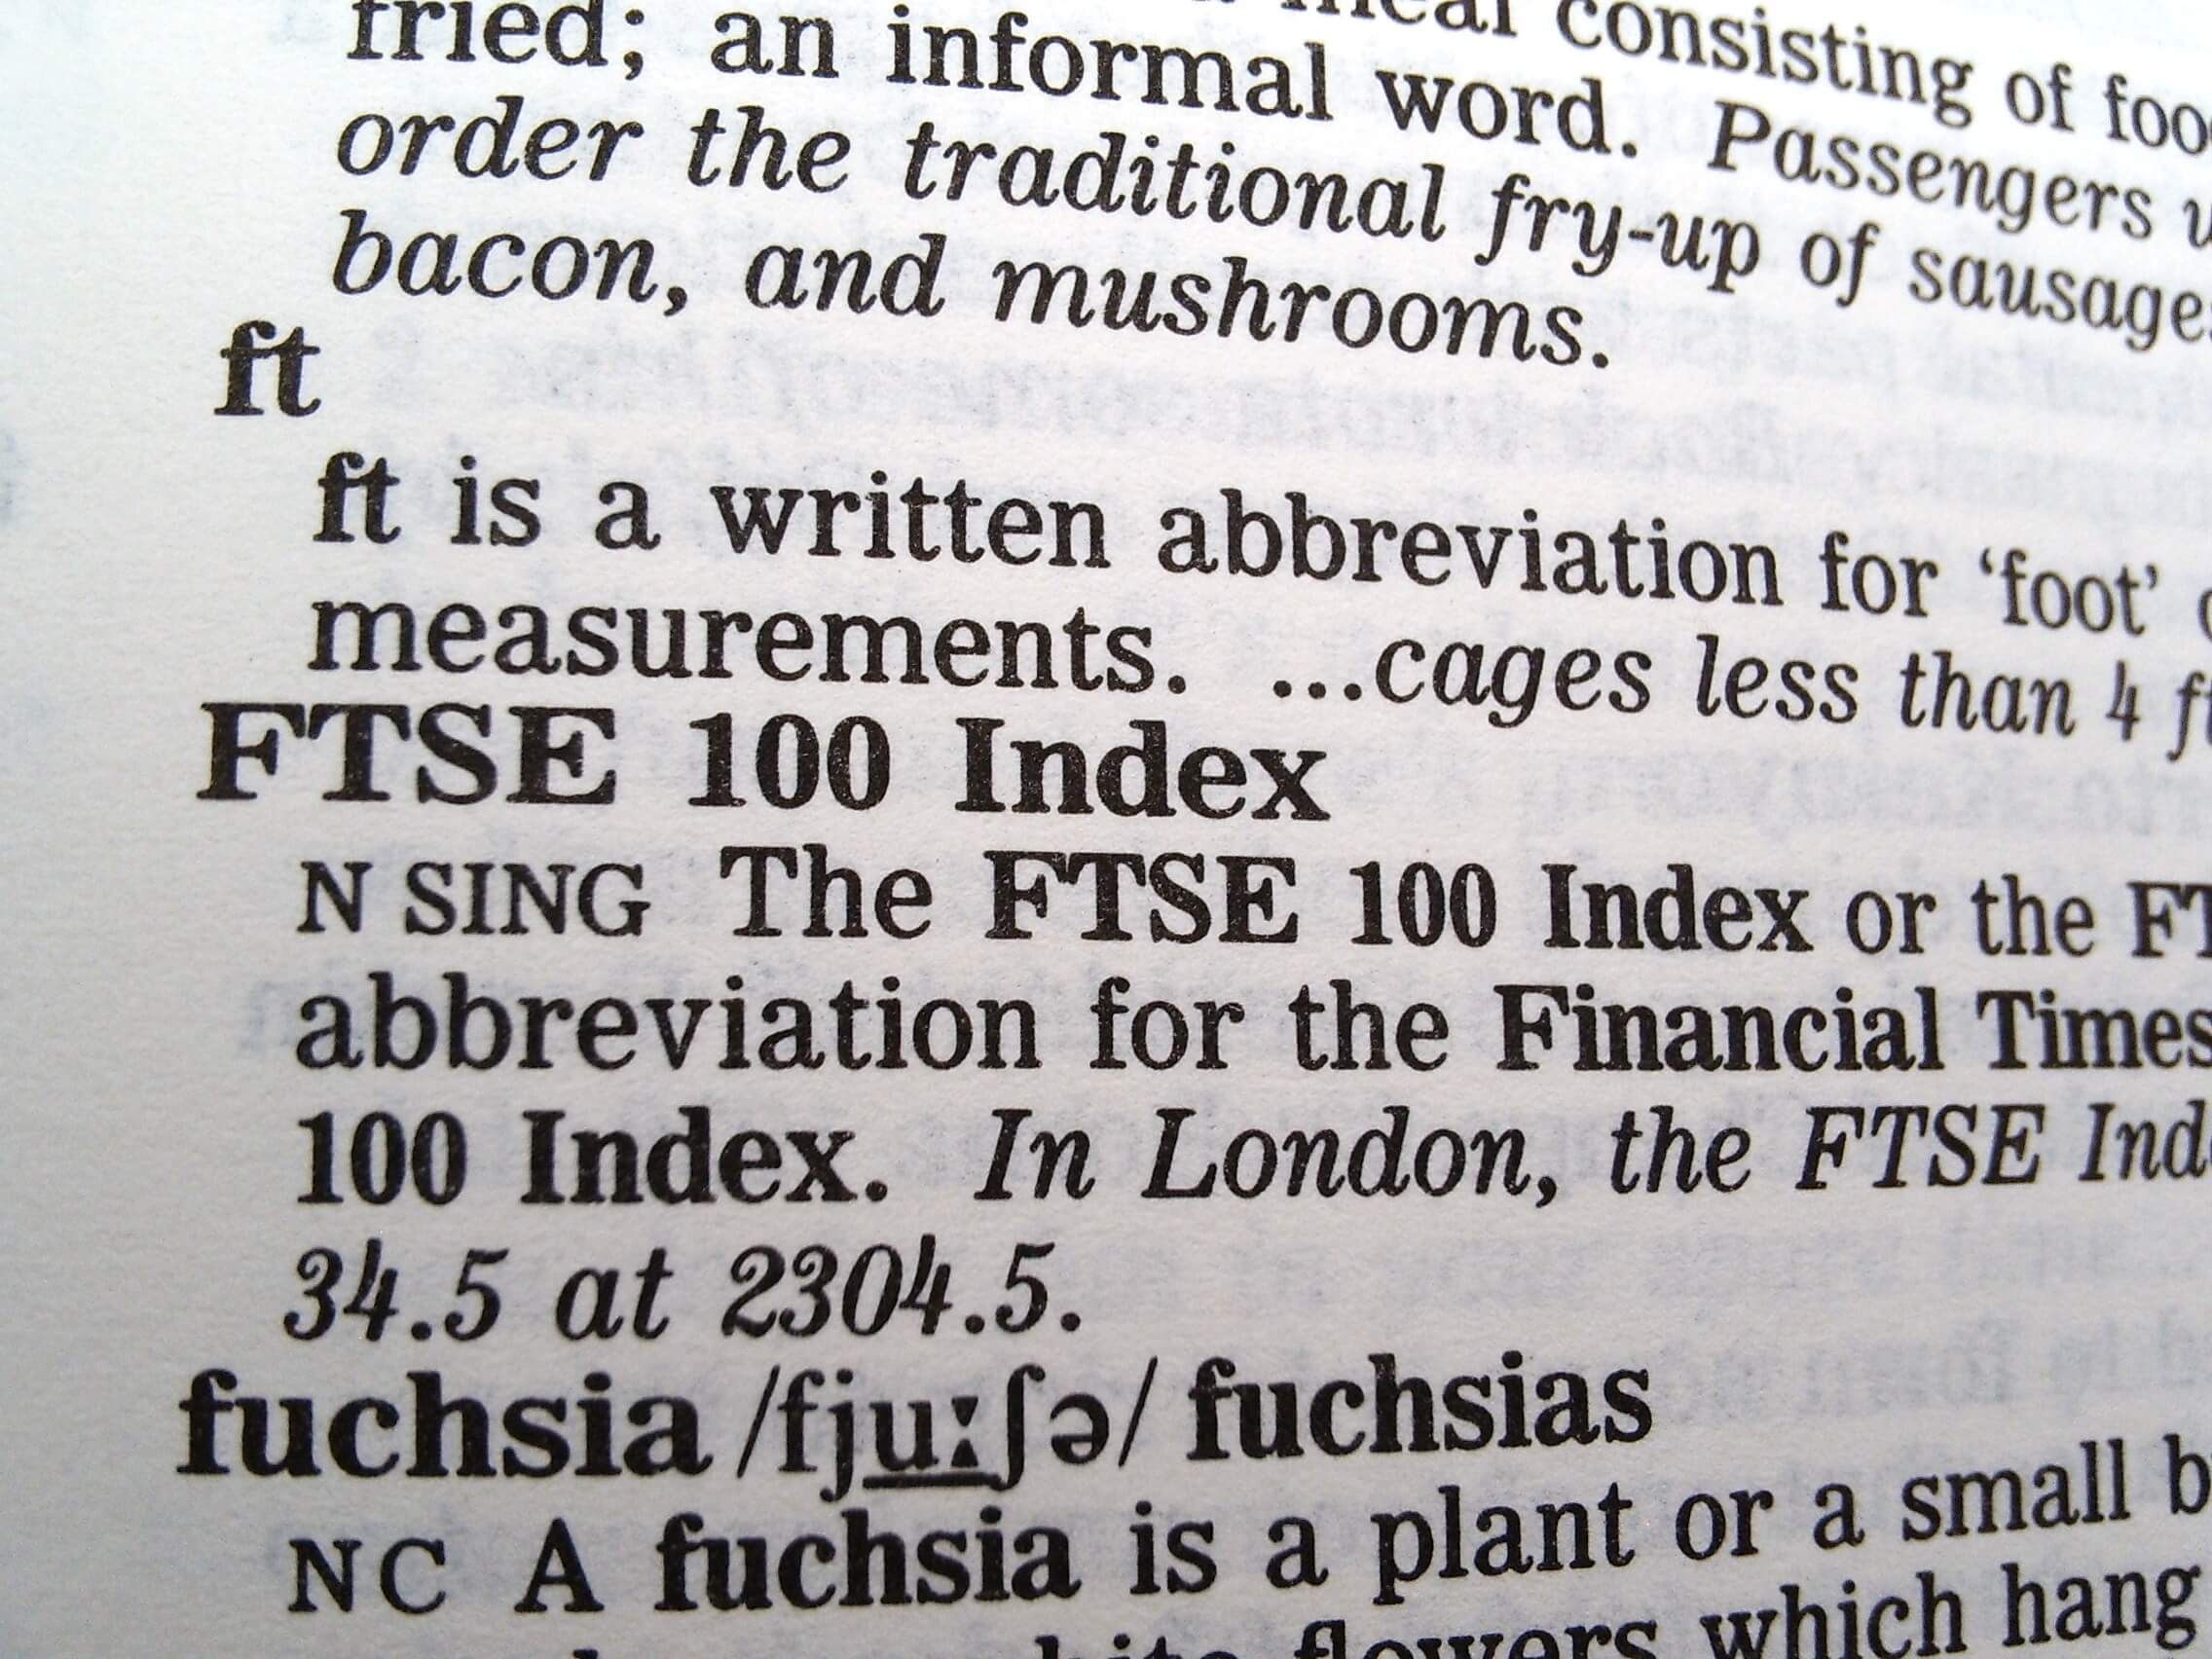 FTSE 100 Index definition